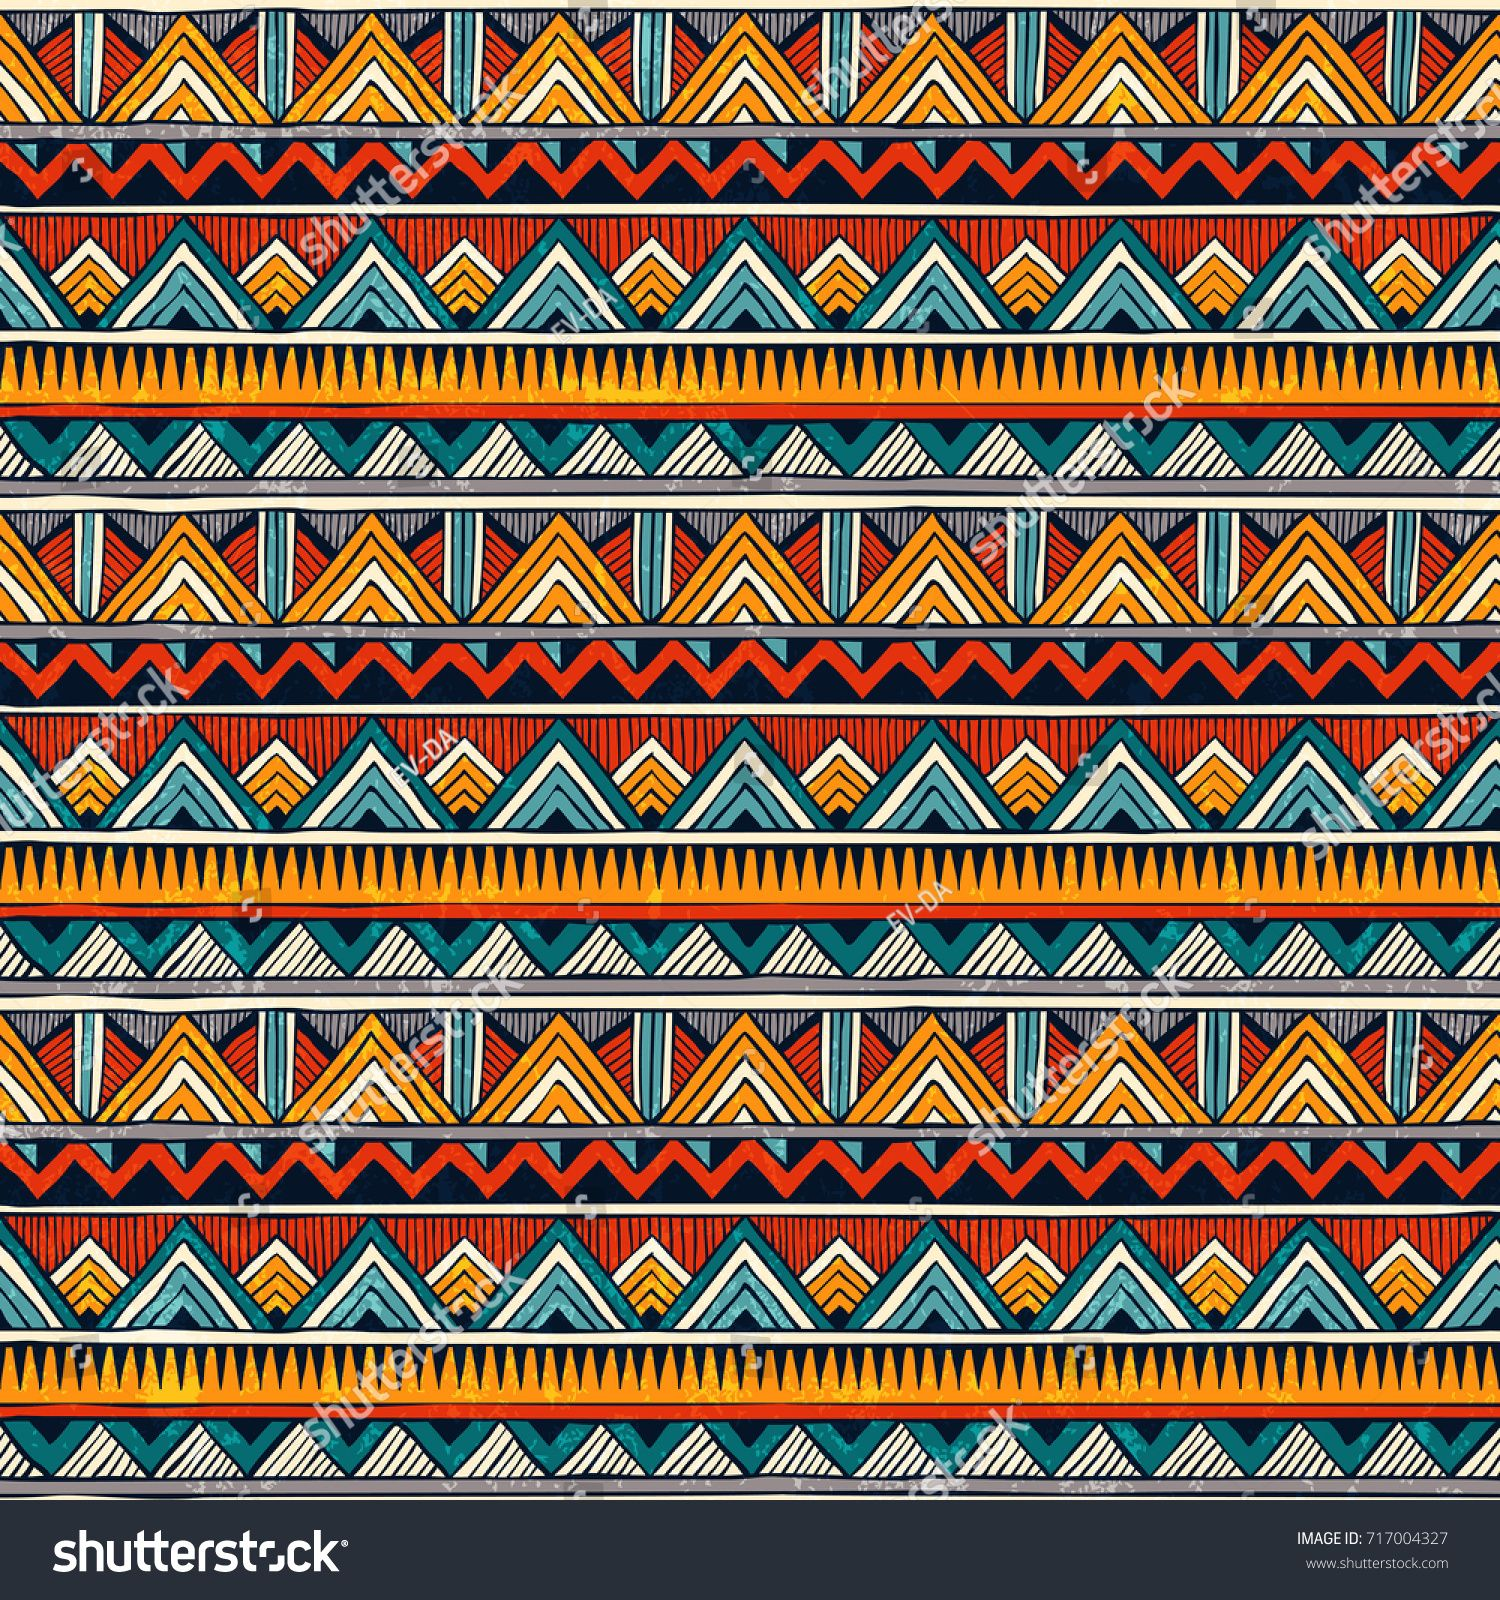 Tribal seamless pattern. African print. Colorful abstract